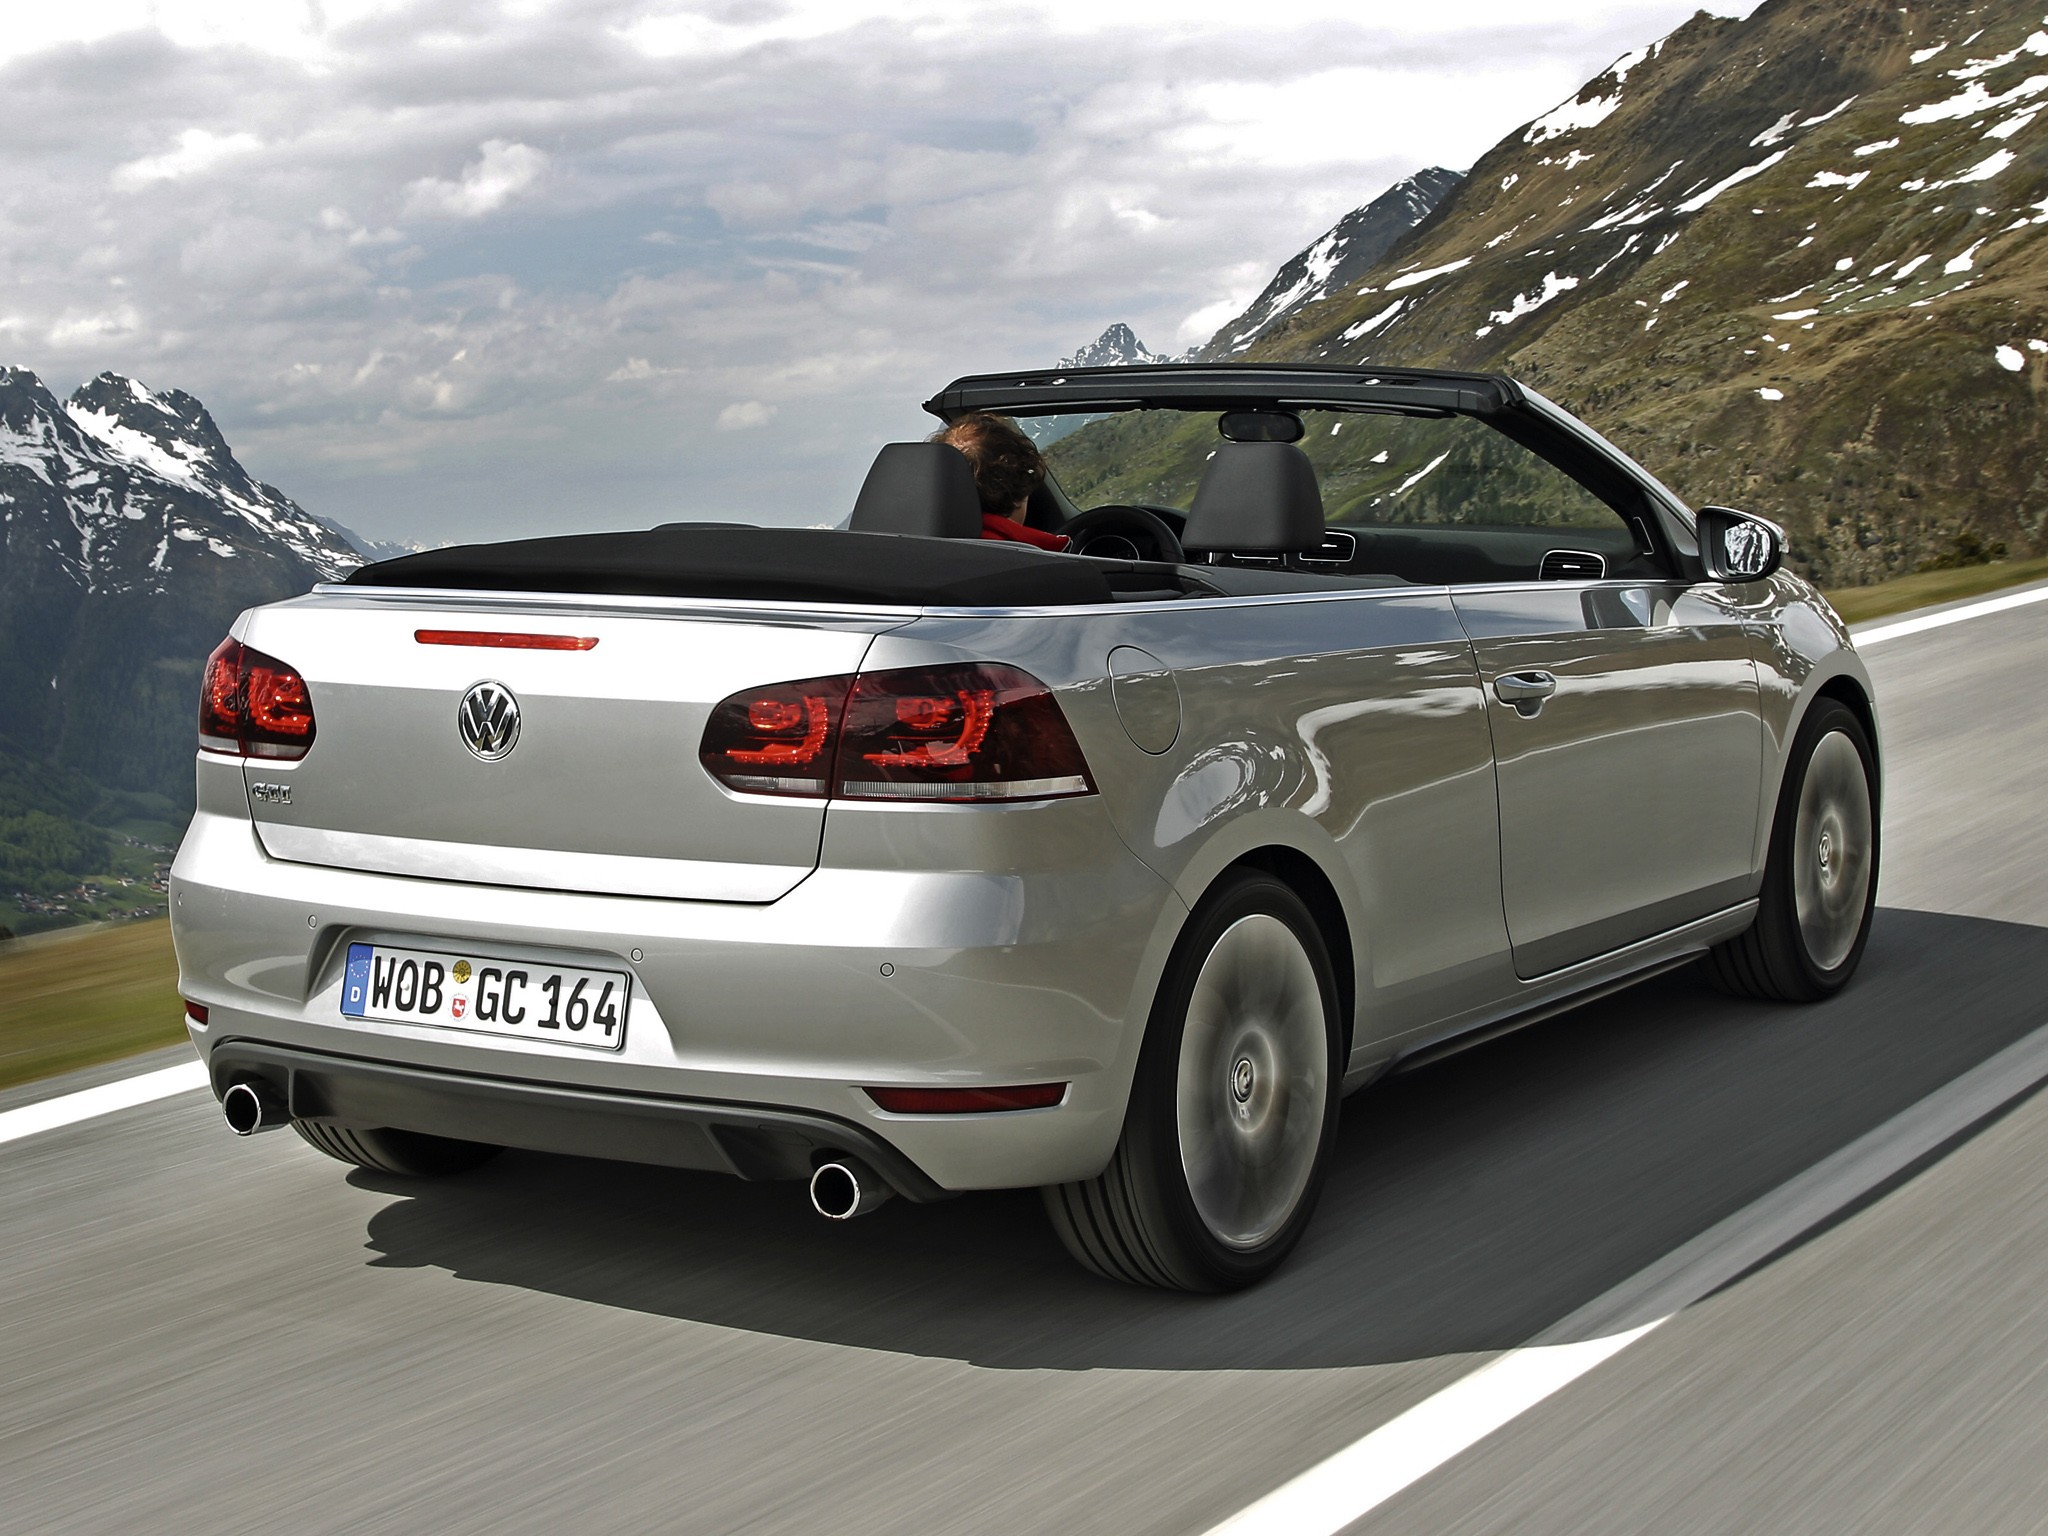 volkswagen golf vi gti cabrio specs photos 2012 2013. Black Bedroom Furniture Sets. Home Design Ideas